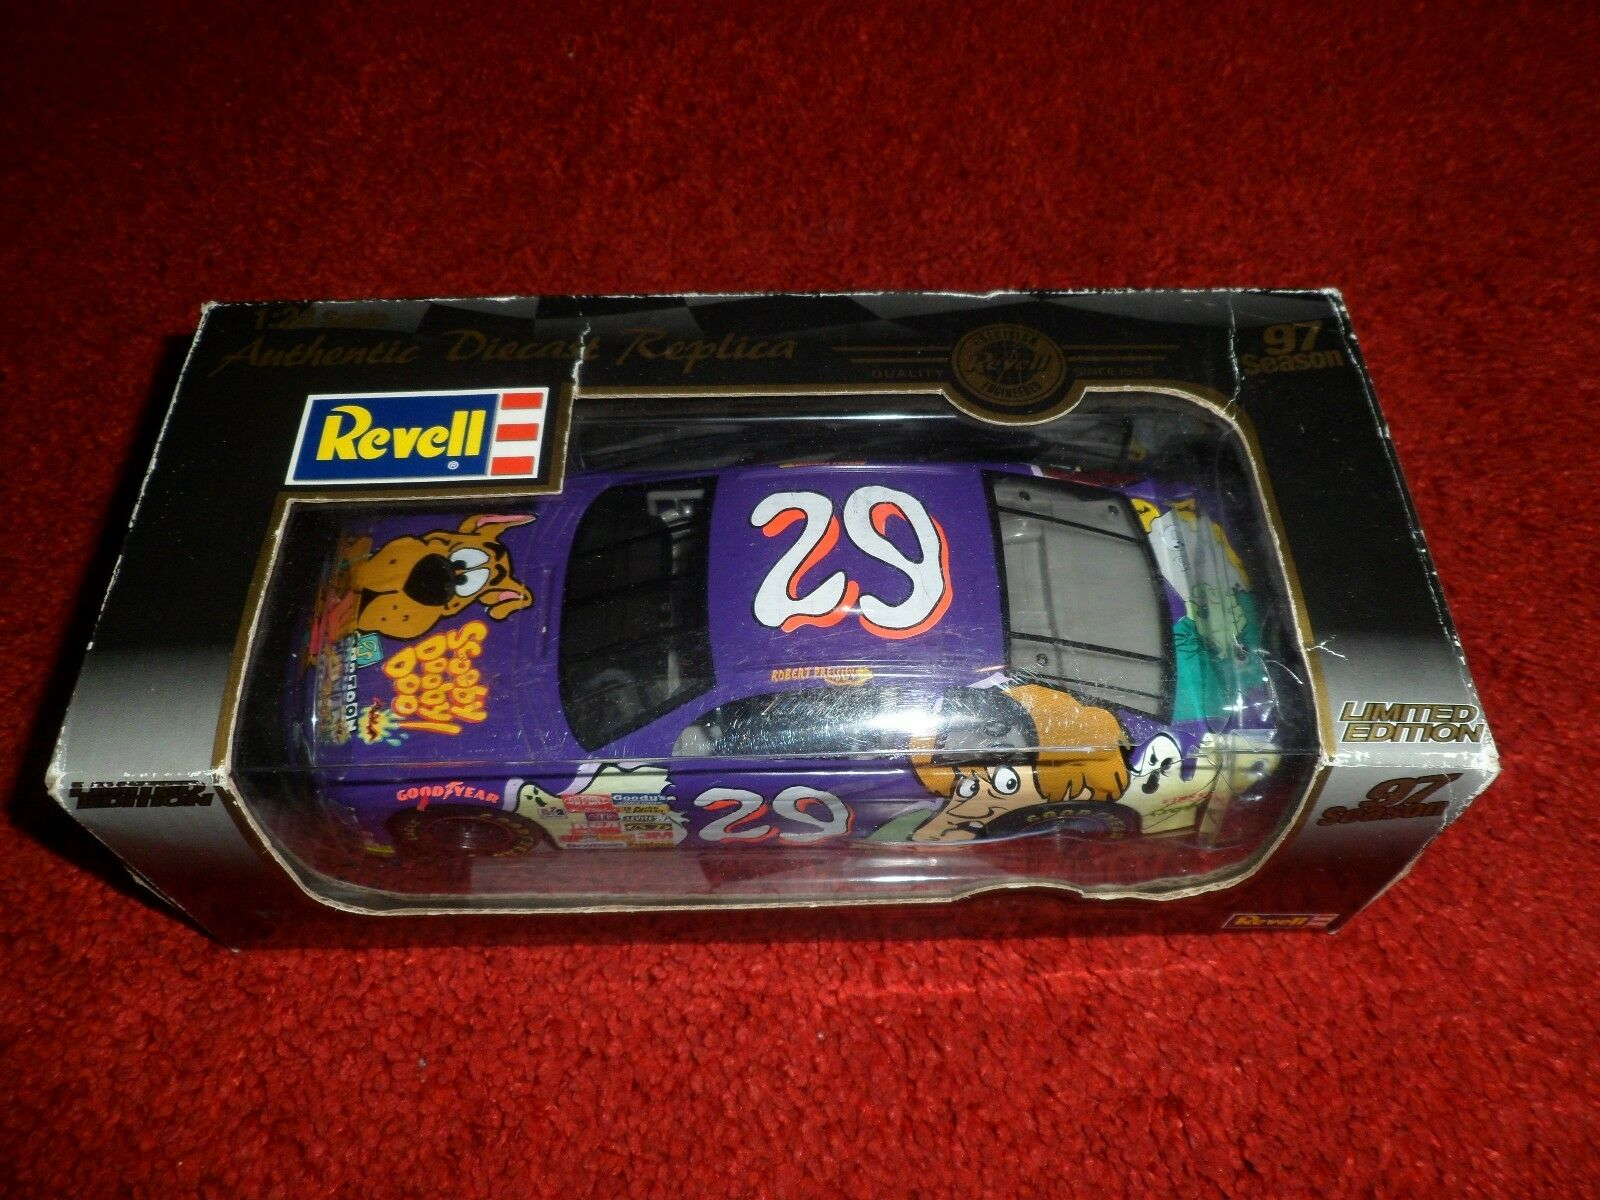 1 24 Scale Authentic Diecast Replica Revell, 1997 Season, 4406, LIMITED EDITION